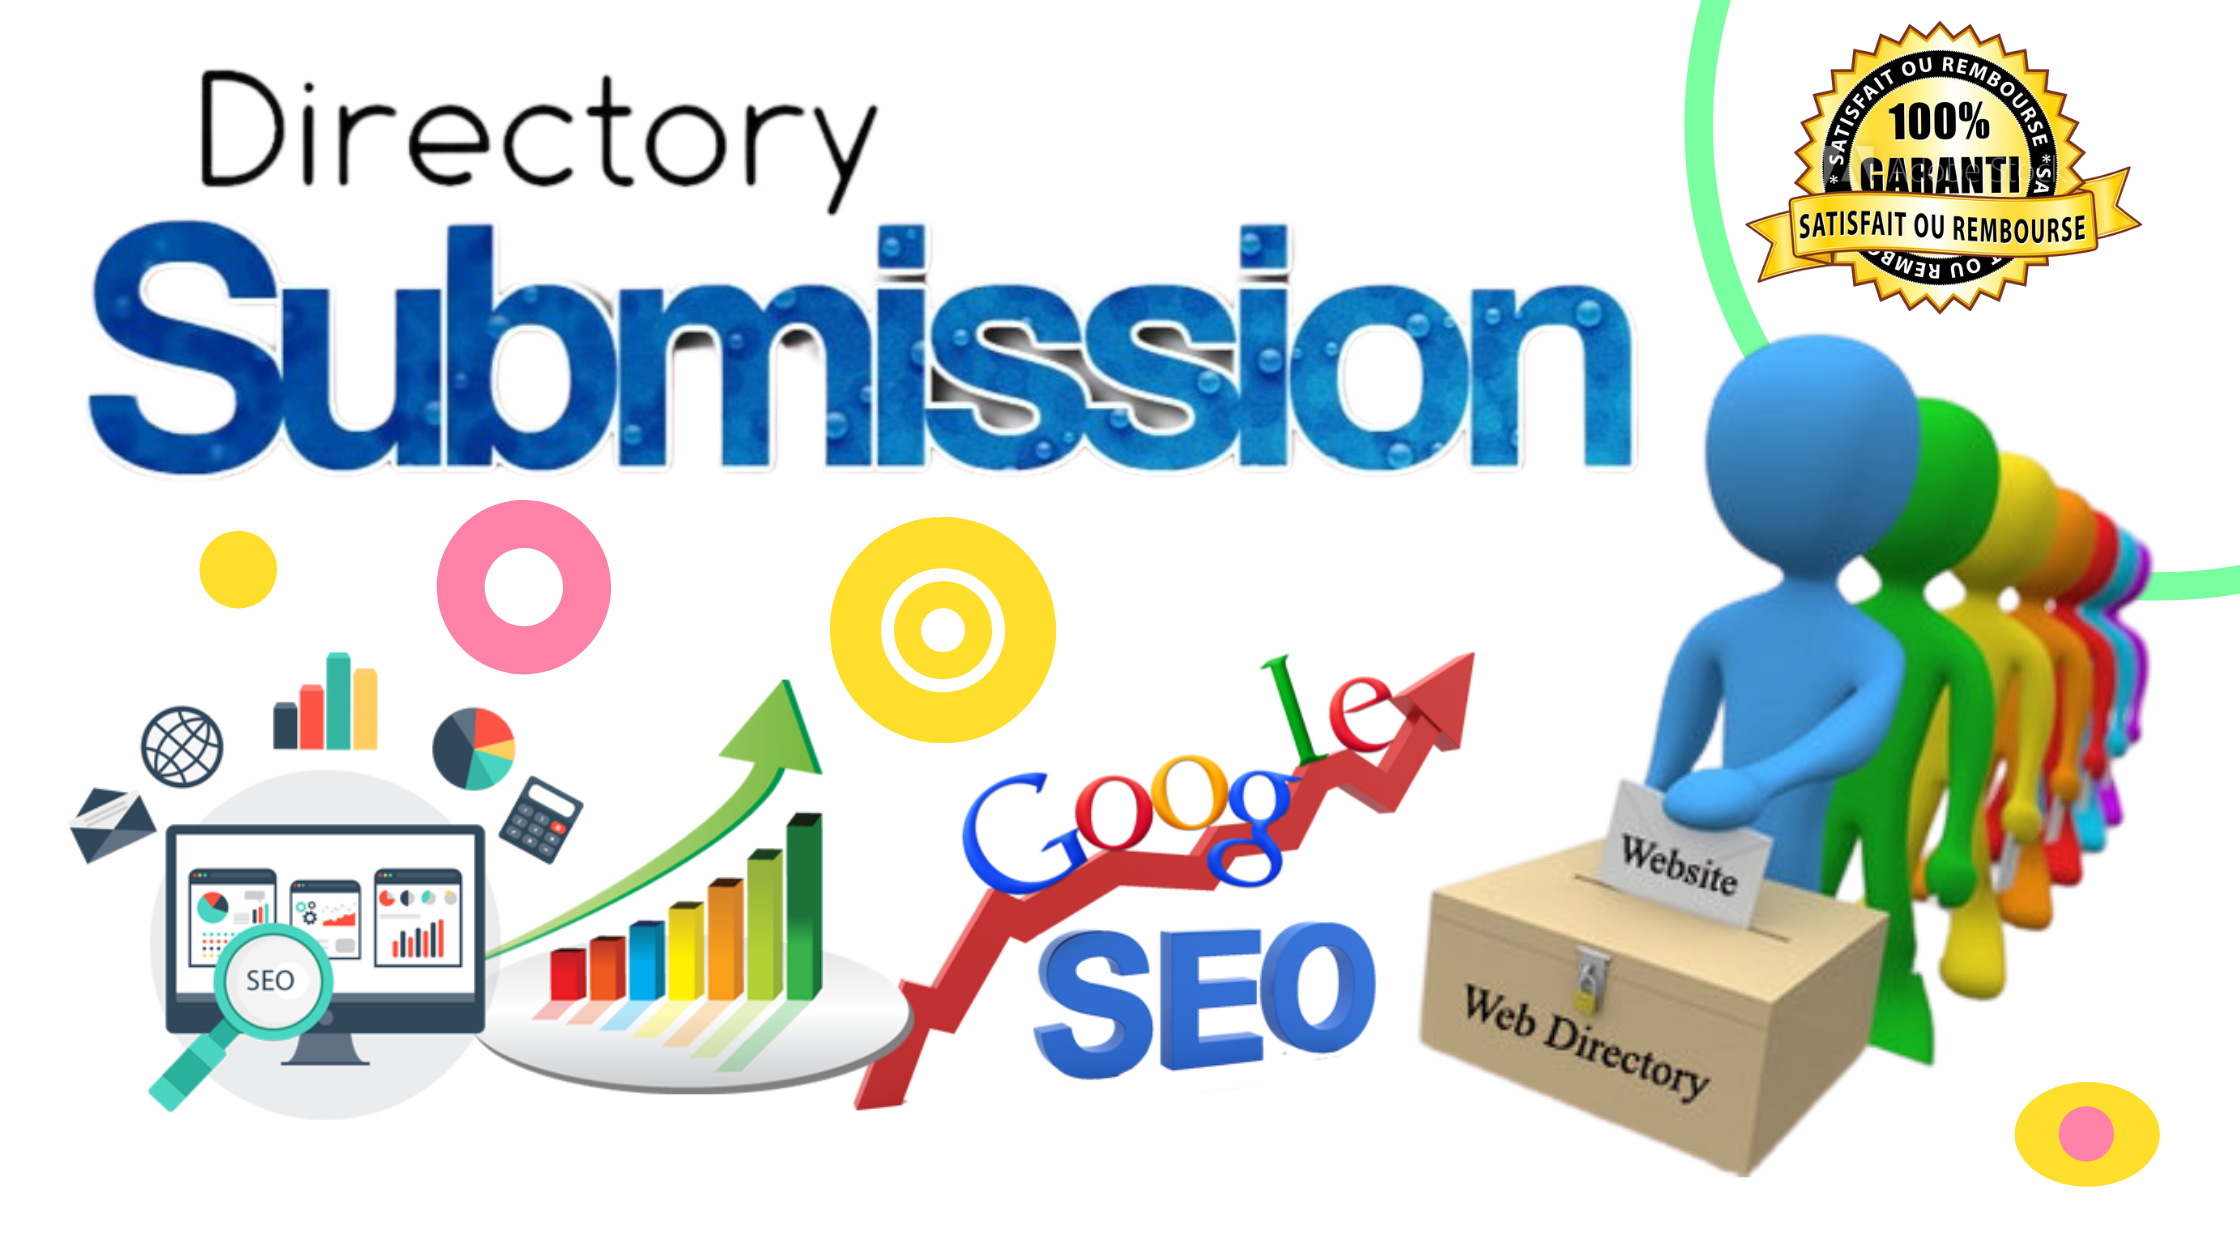 I will provide 100 directory submission SEO backlinks